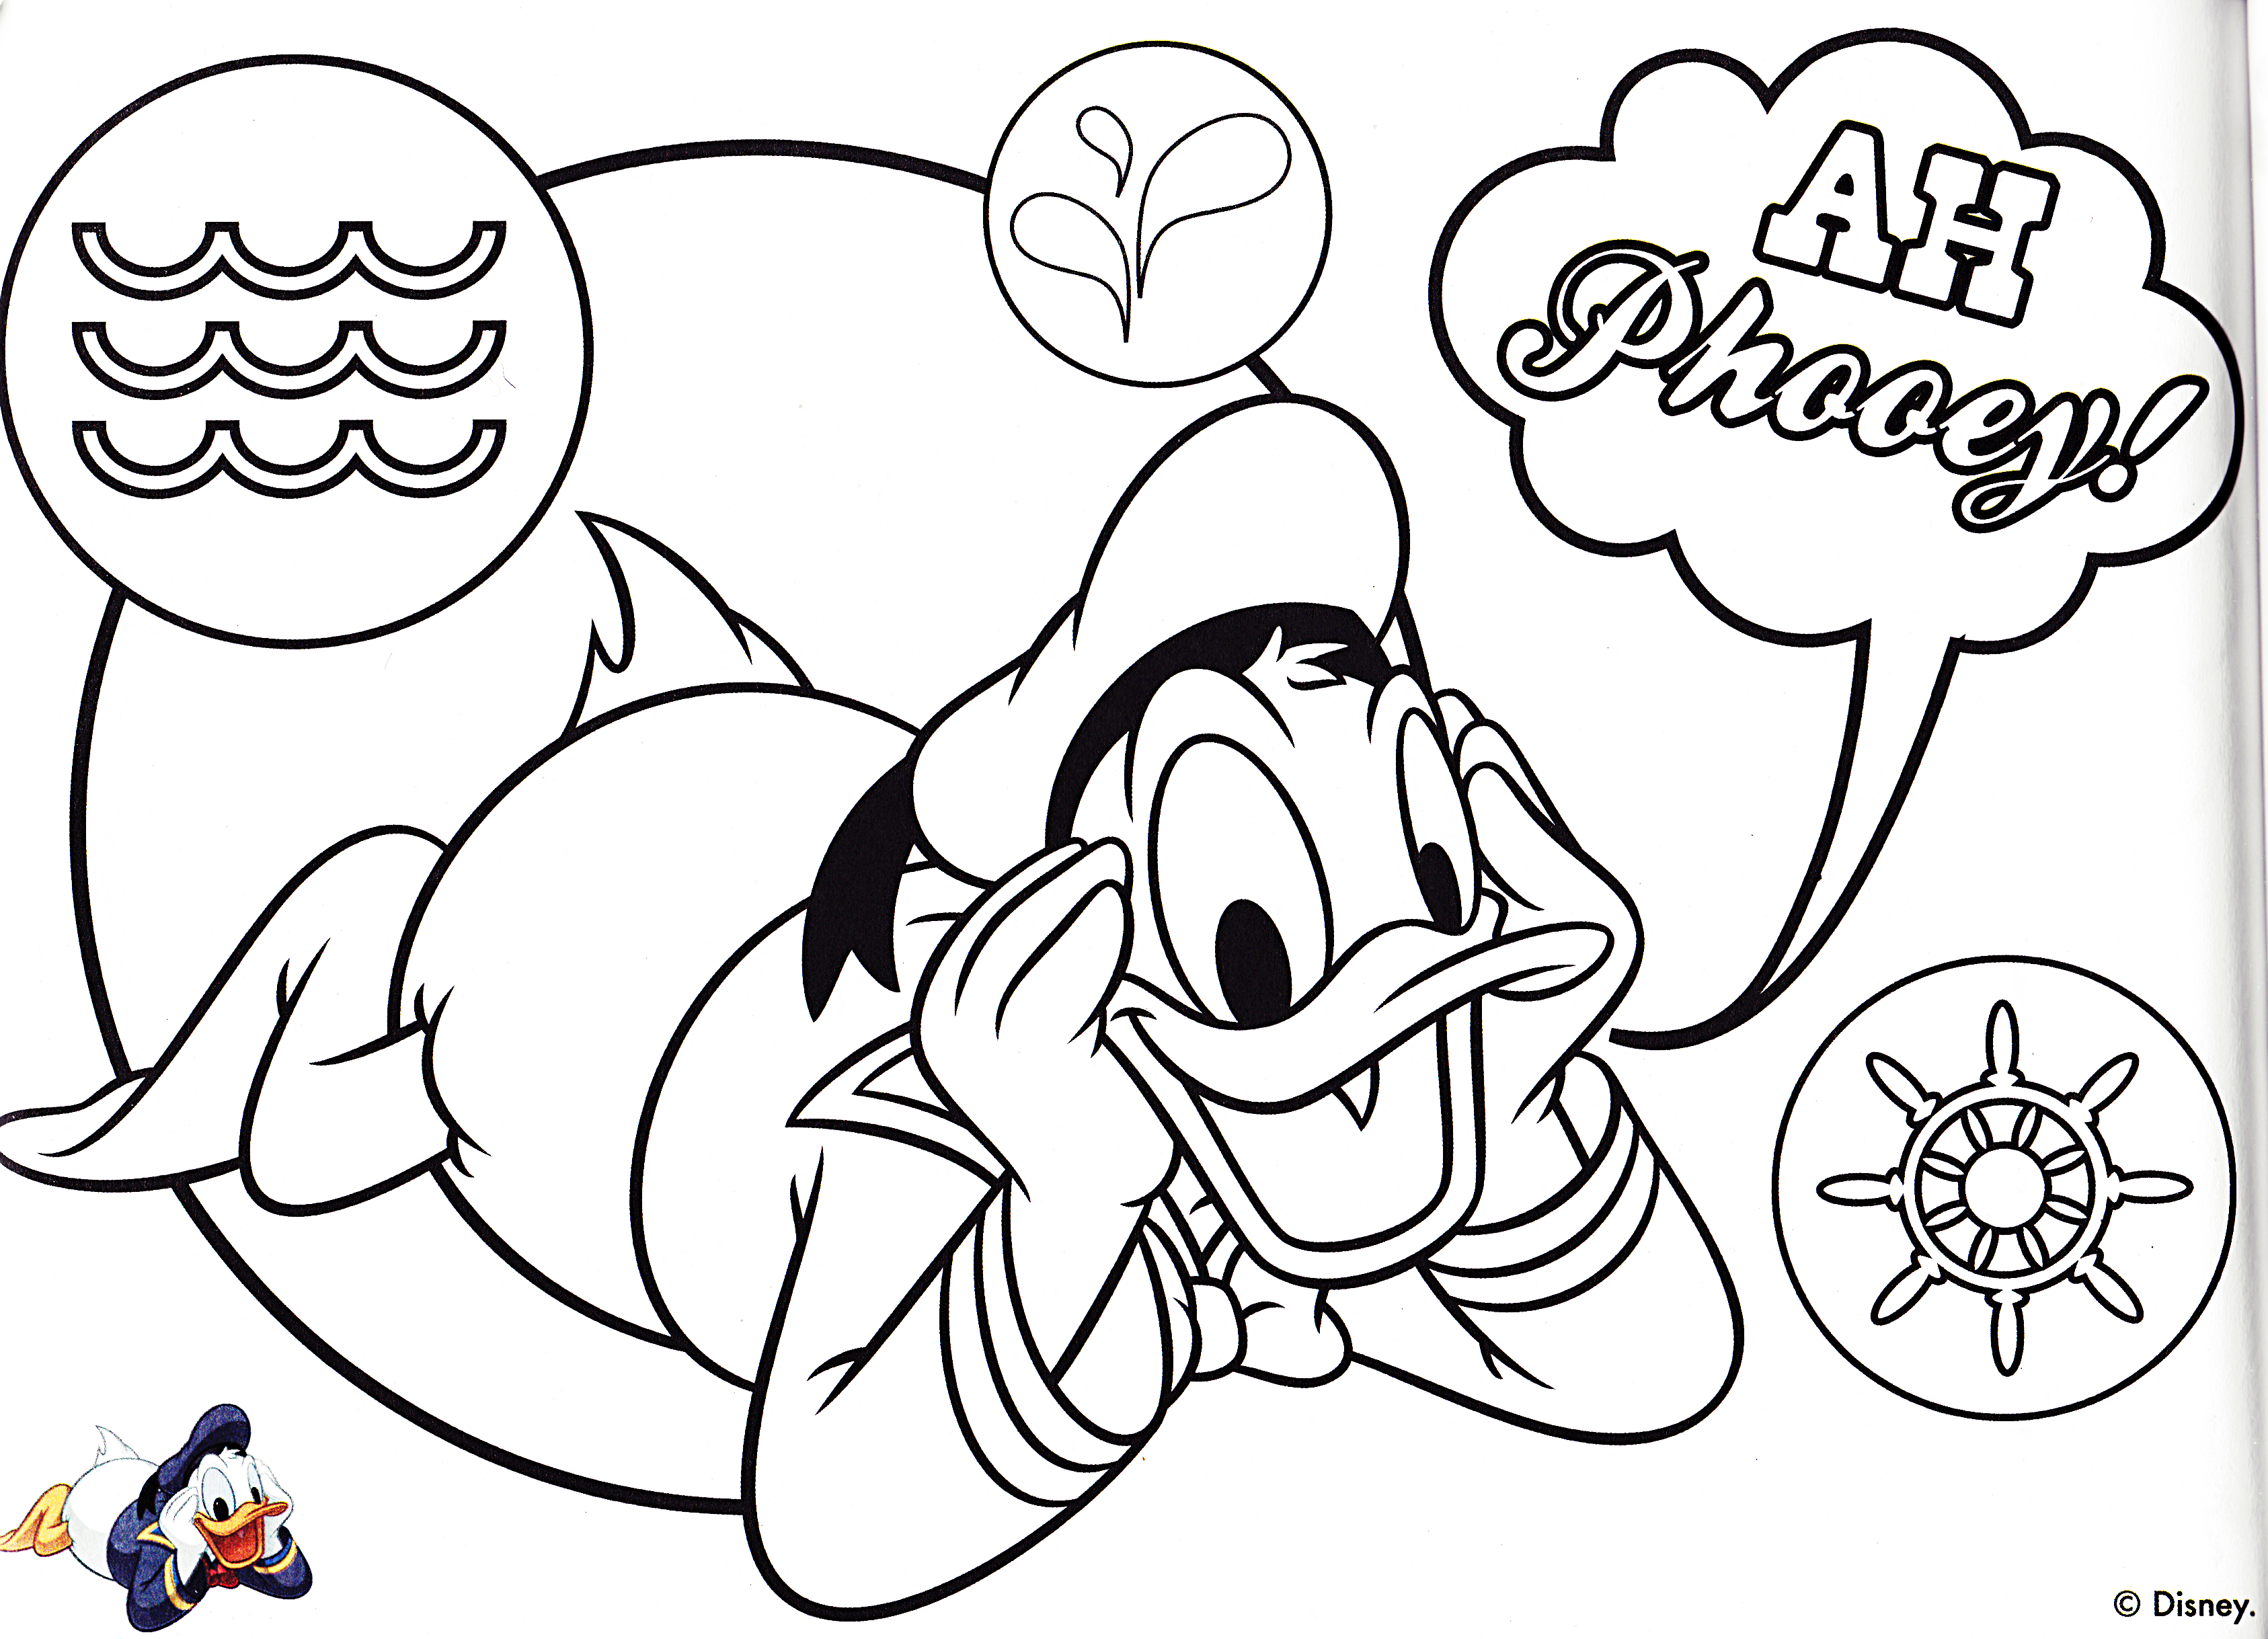 walt disney characters coloring pages - walt disney character pages coloring pages